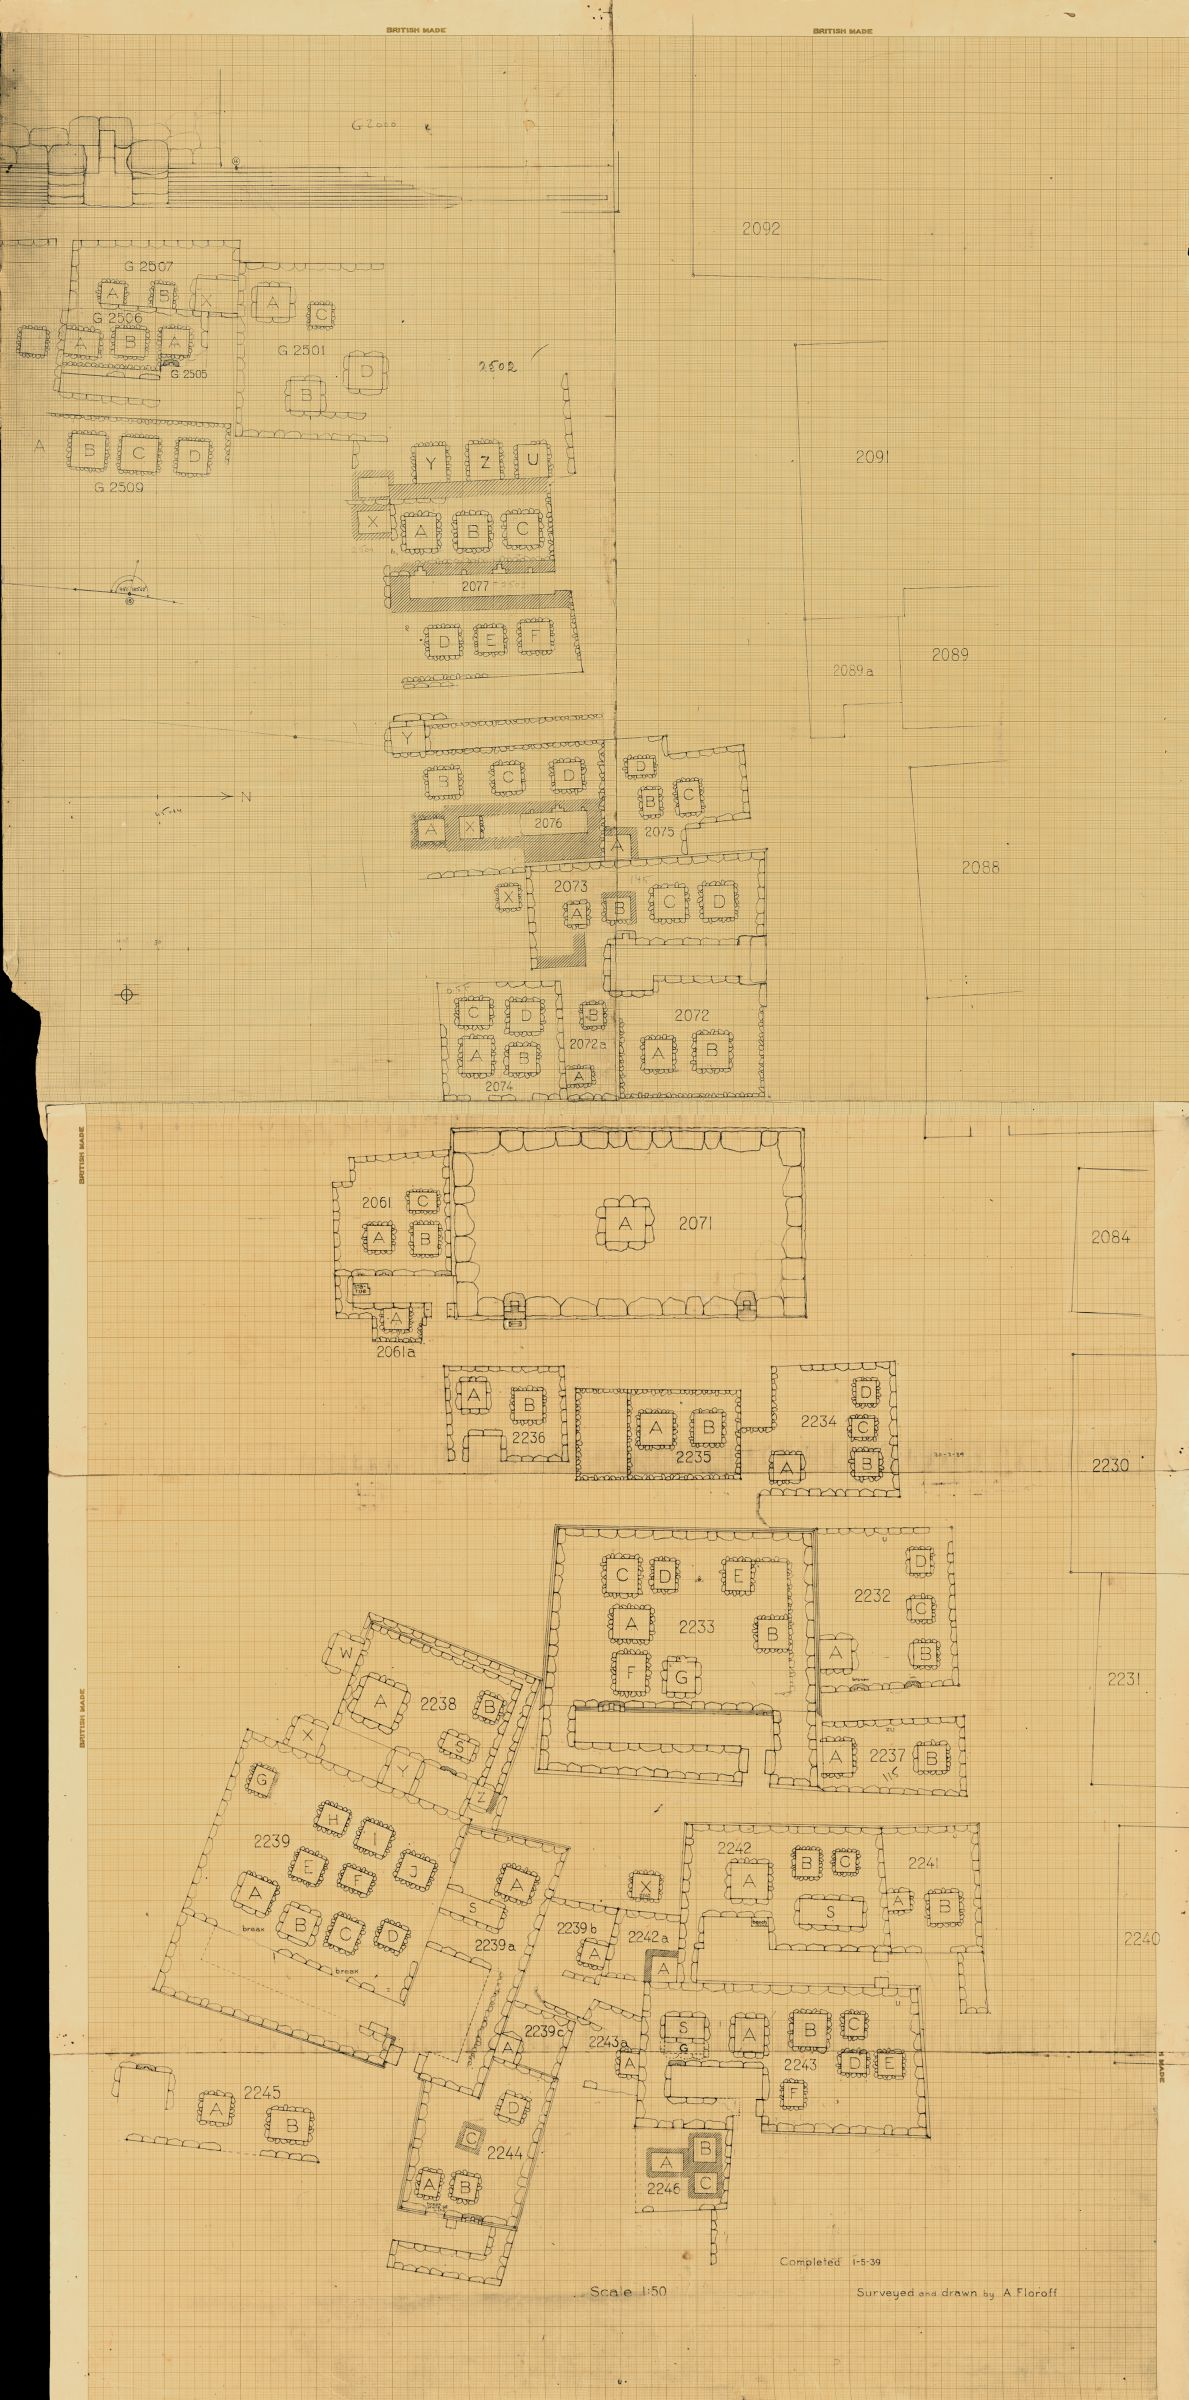 Maps and plans: Plan of Cemetery G 2000, NNW part